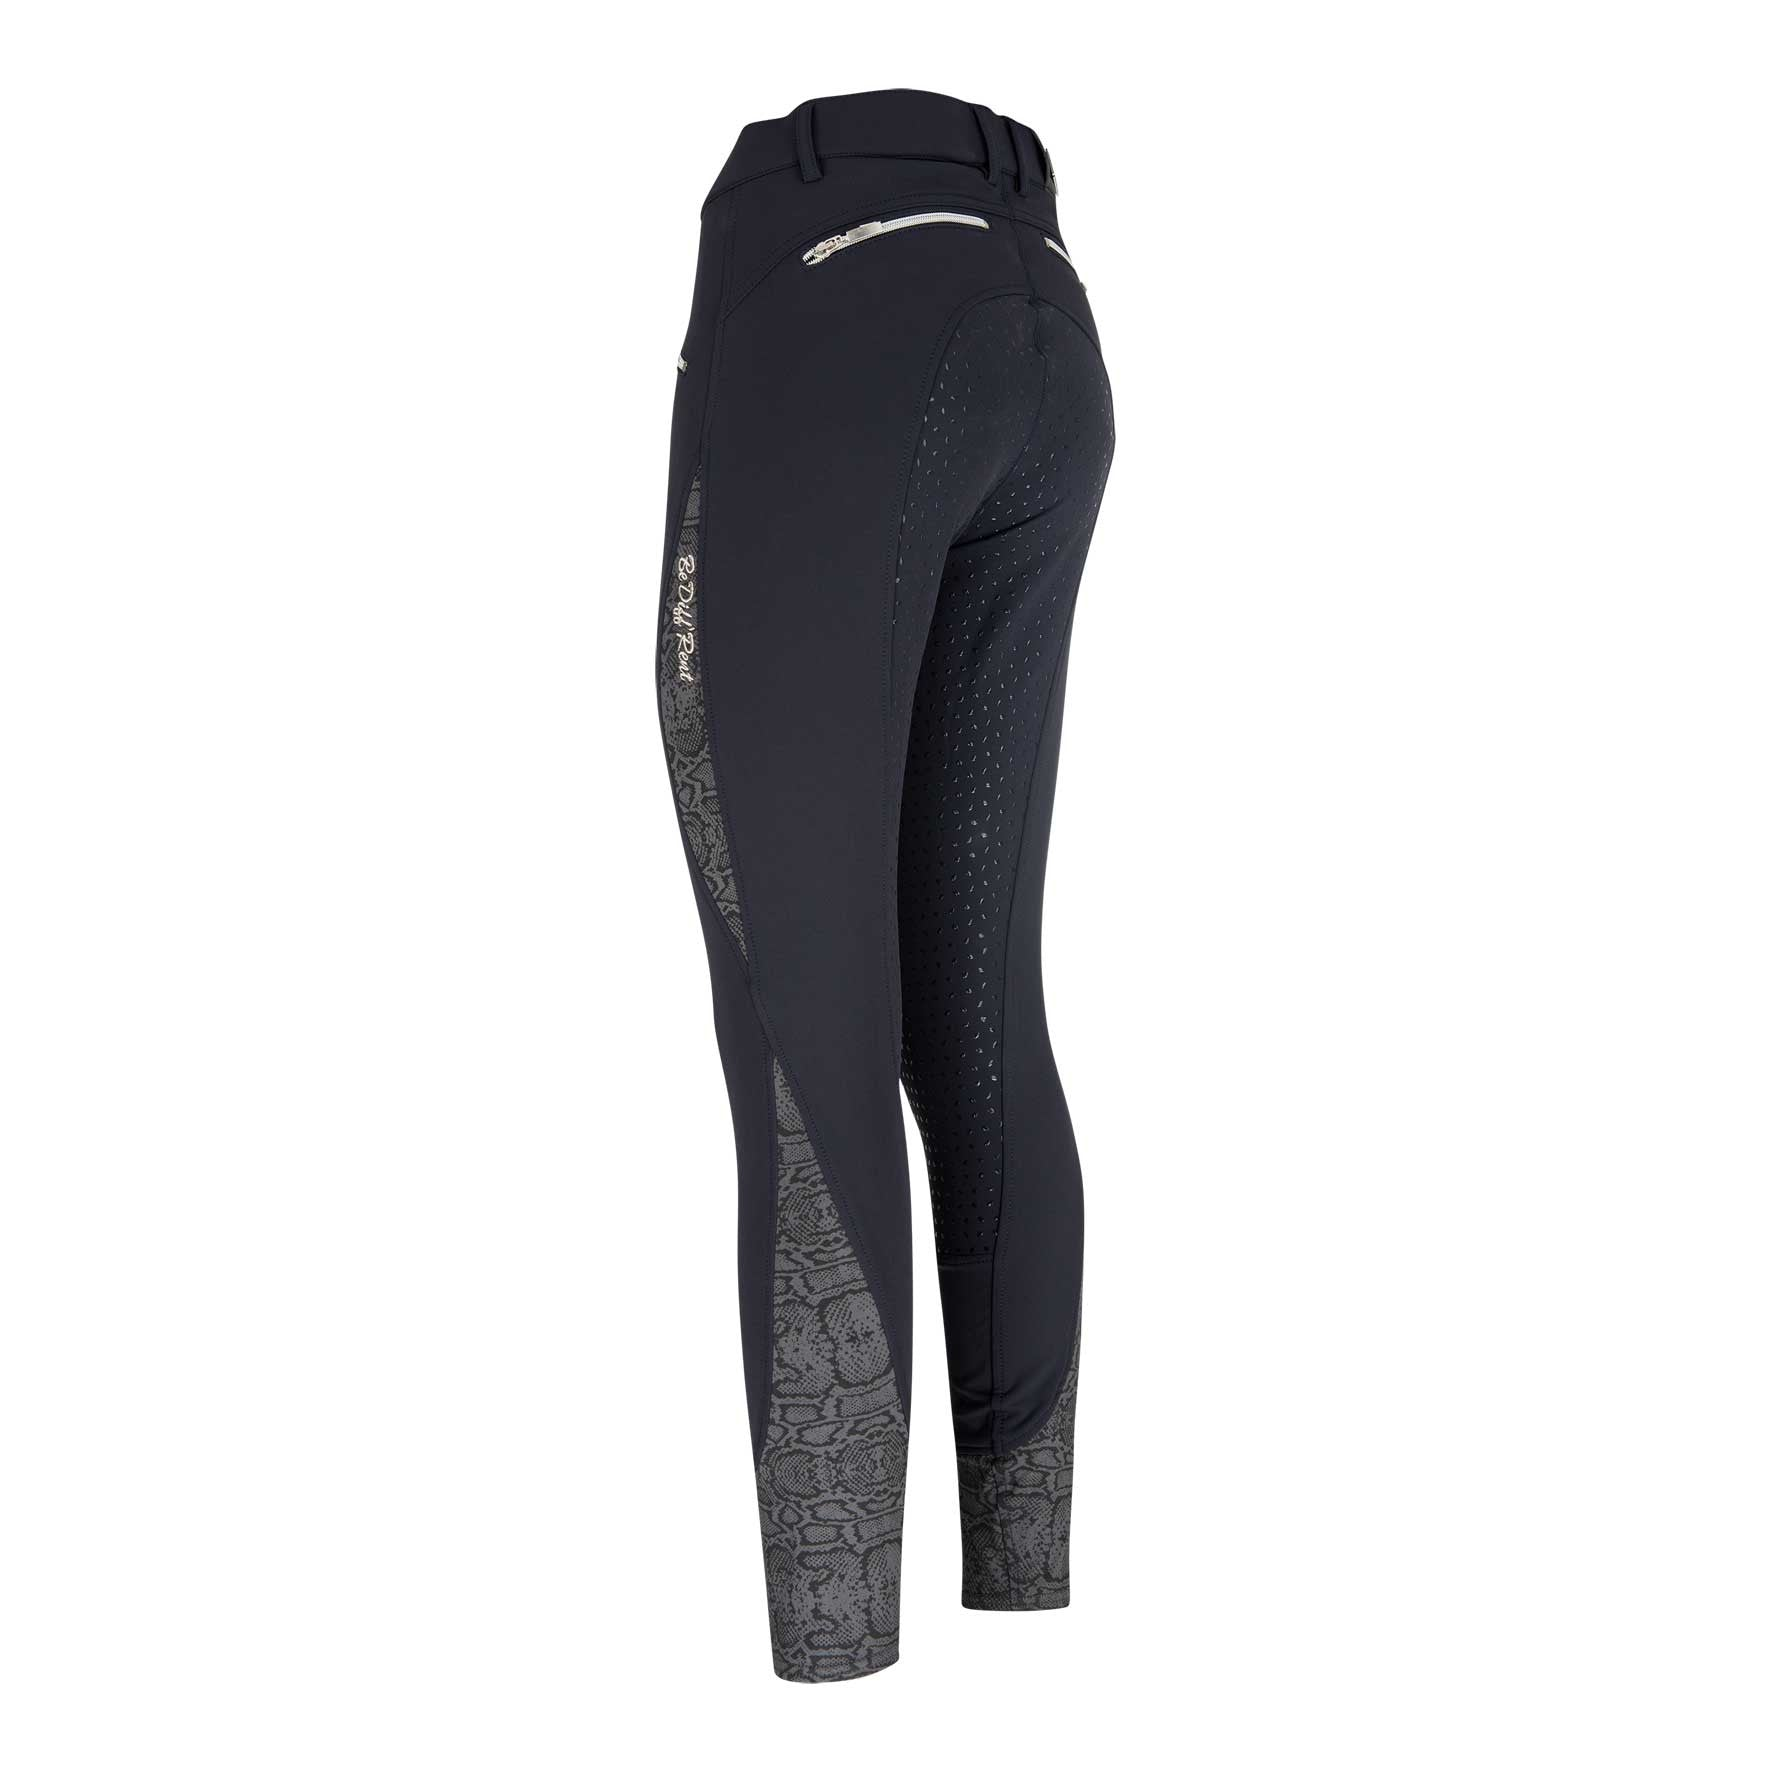 Euro-Star Easyrider AW16 Dione P Full Grip Breeches - Navy or Raven Grey